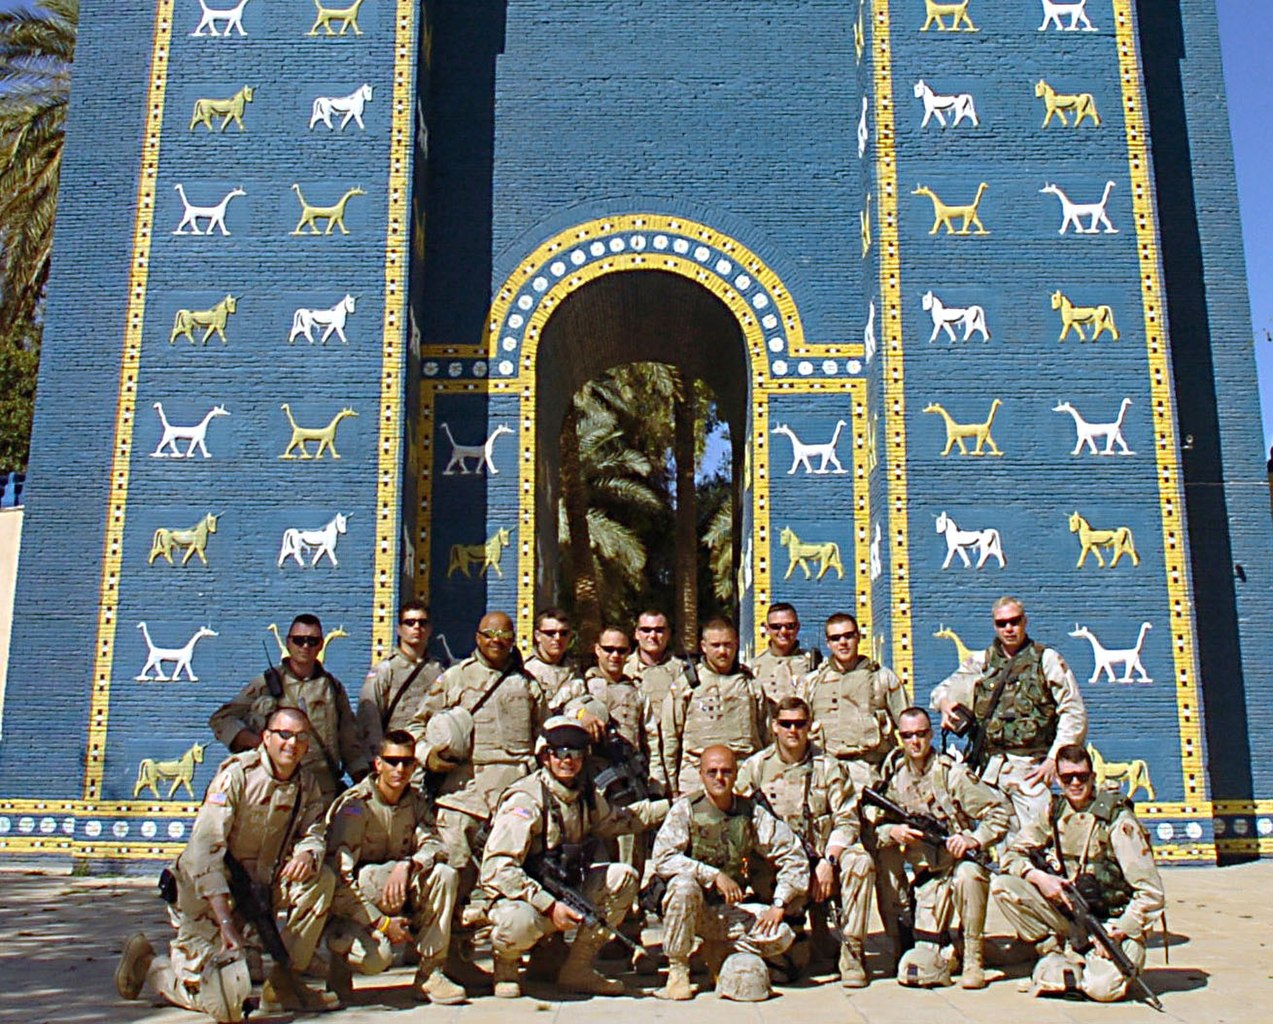 More On Date Gate >> File:Ishtar gate soldiers.jpg - Wikipedia